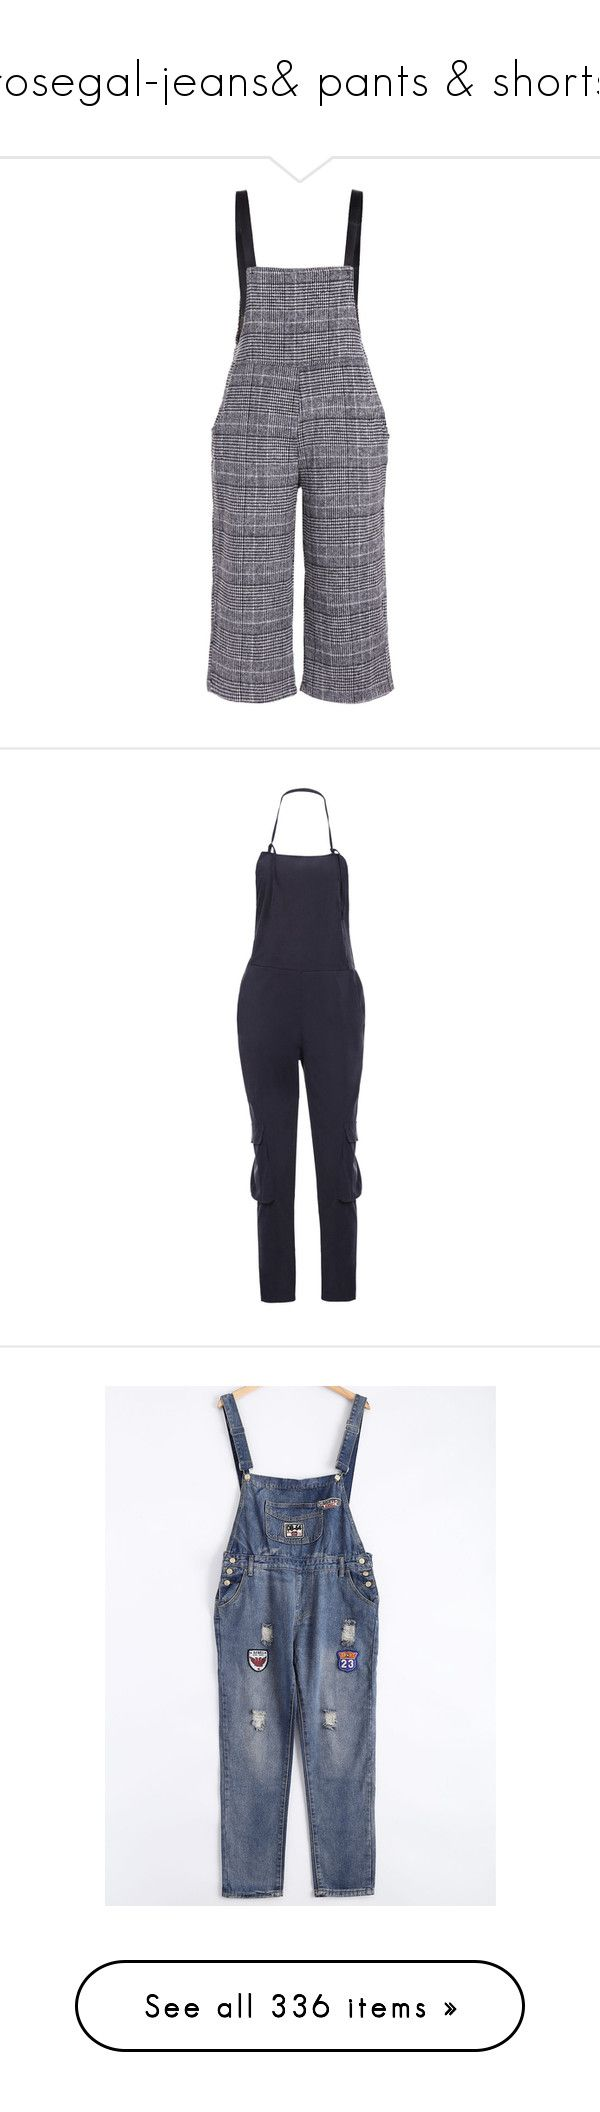 """rosegal-jeans& pants & shorts"" by rosegal-official ❤ liked on Polyvore featuring jumpsuits, rosegal, pants, women's plus size overalls, blue bib overalls, blue overalls, overalls jumpsuit, plus size bib overalls, pant and bib overalls"